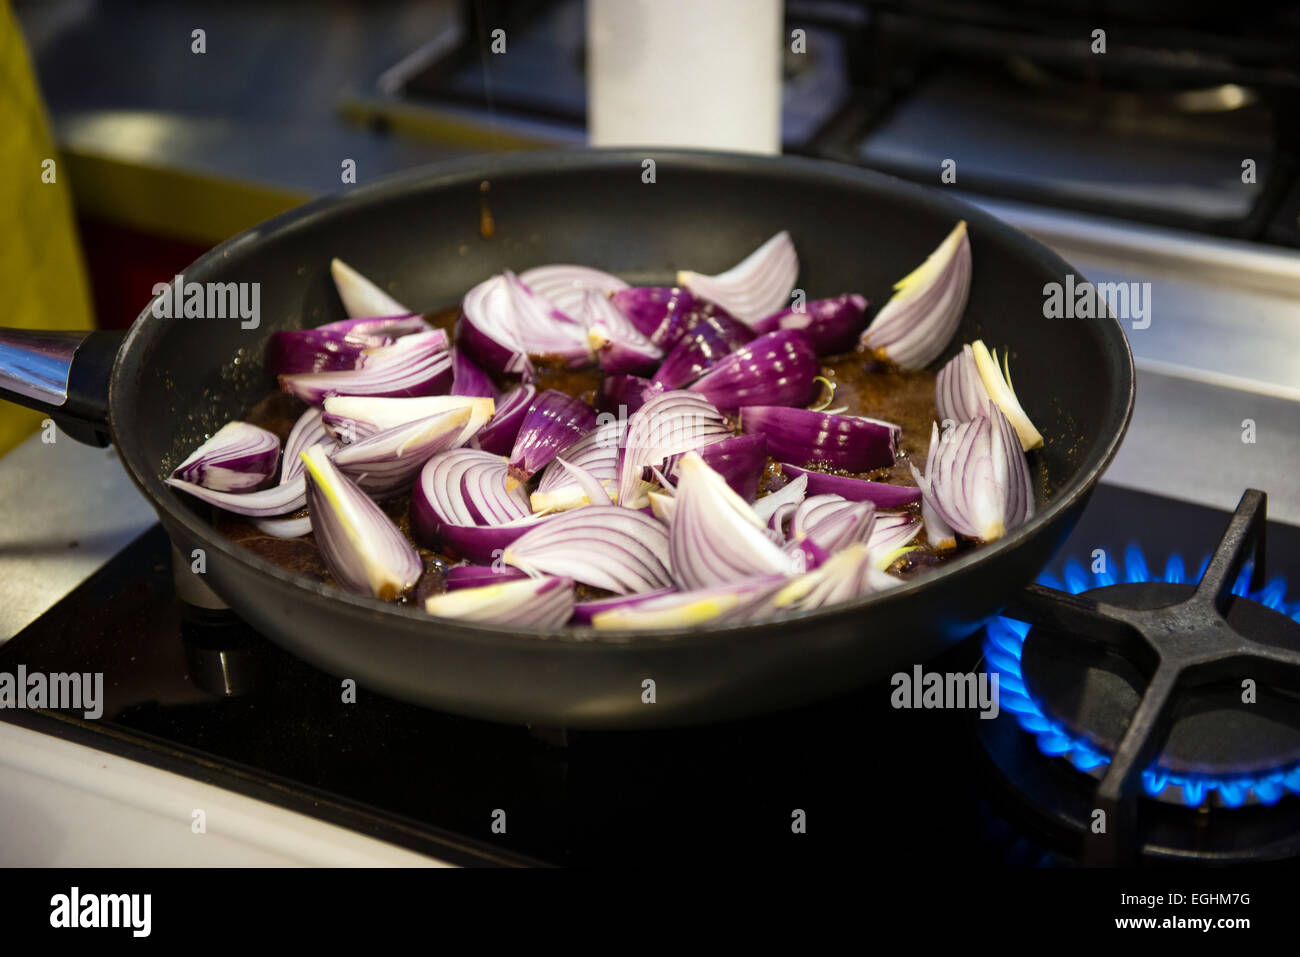 Preparing steak sauce from red onion wedges, caramel and red wine - Stock Image